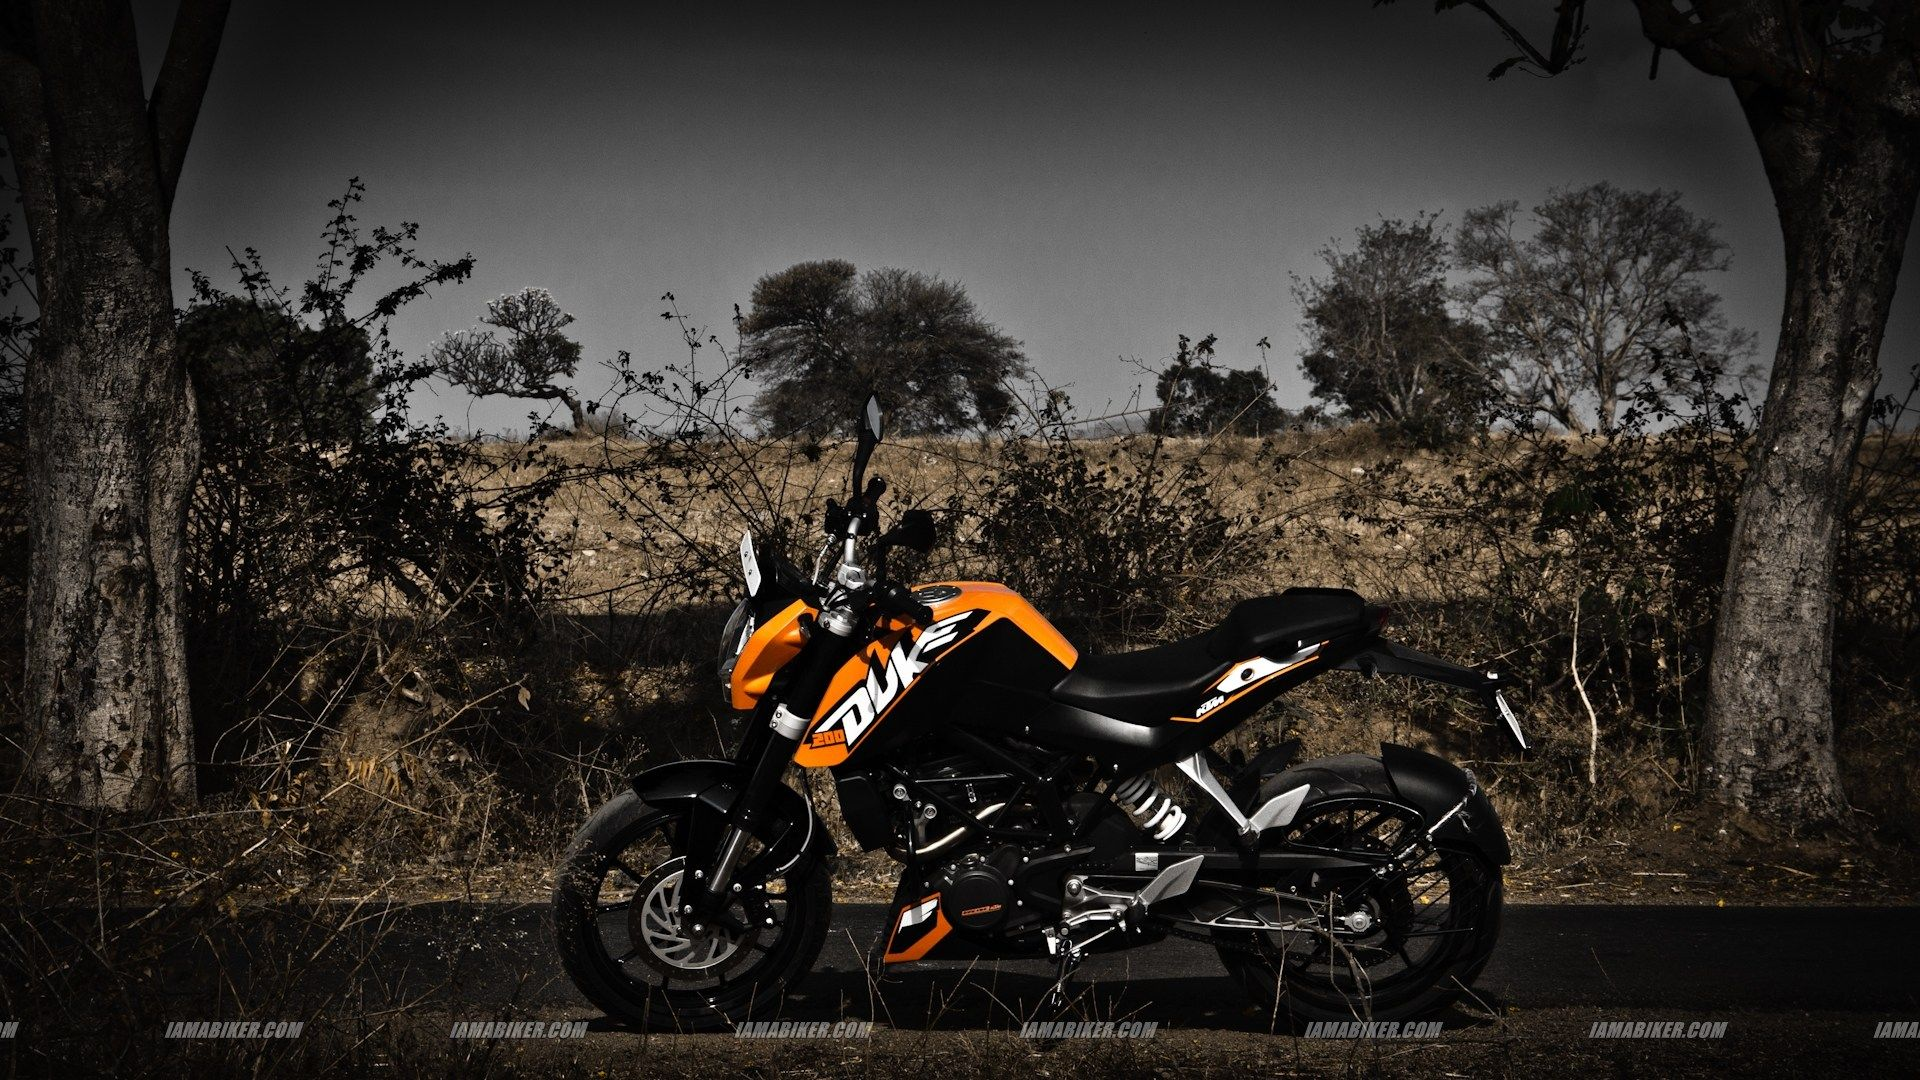 Ktm Duke 200 Hd Wallpapers With Images Ktm Ktm Duke 200 Ktm Duke